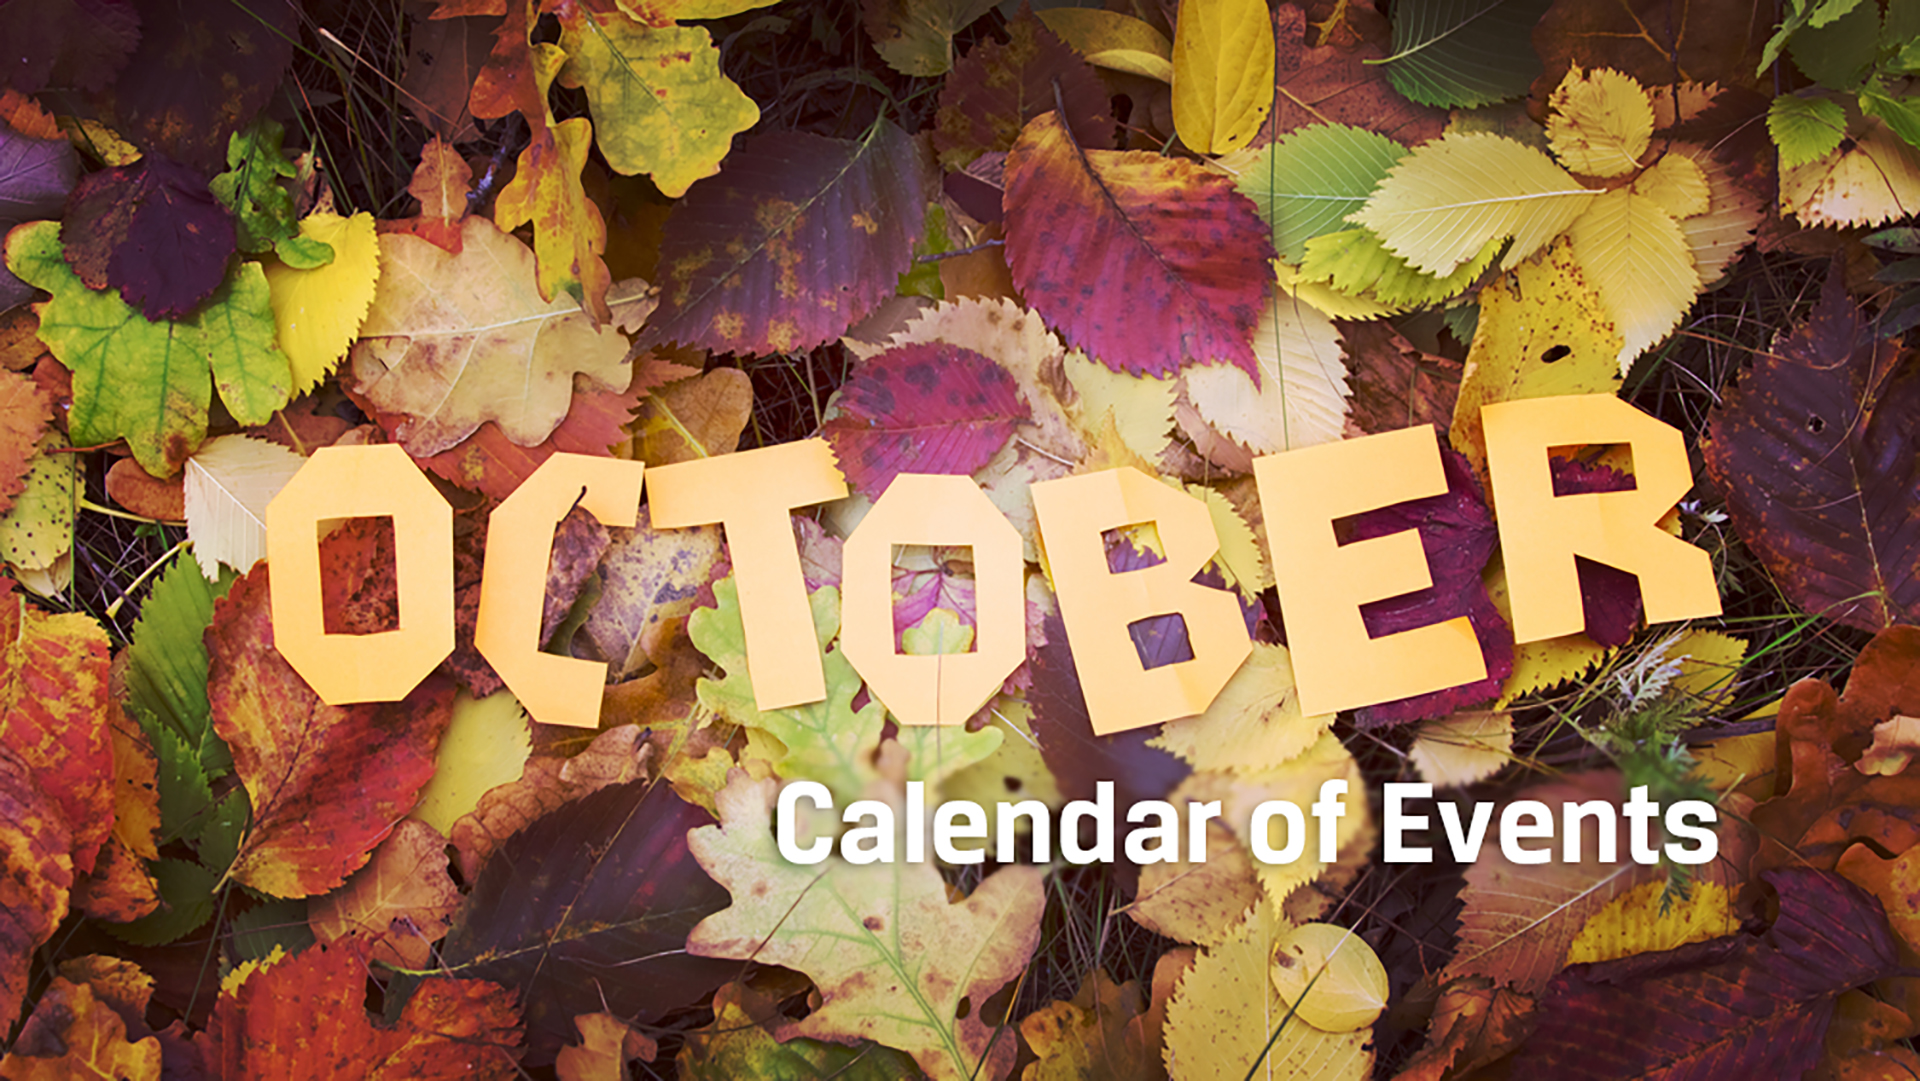 October entertainment calendar: Comprehensive guide to Halloween, concerts, arts productions and more